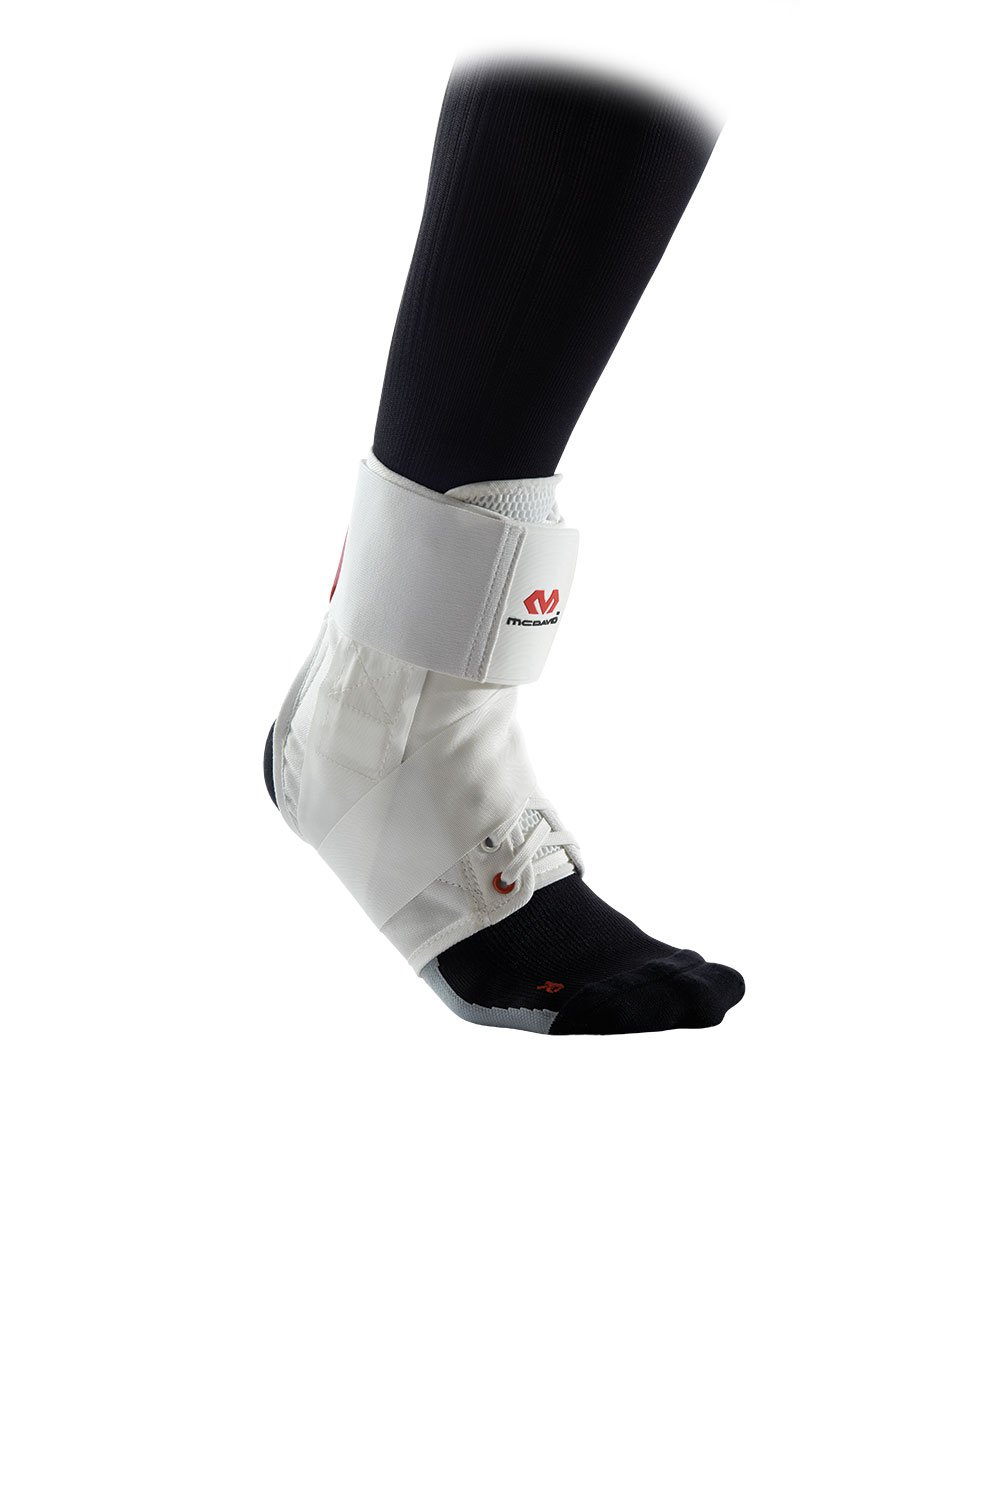 Mcdavid Ultralight Ankle Brace With Figure 6 Strap, Small by McDavid